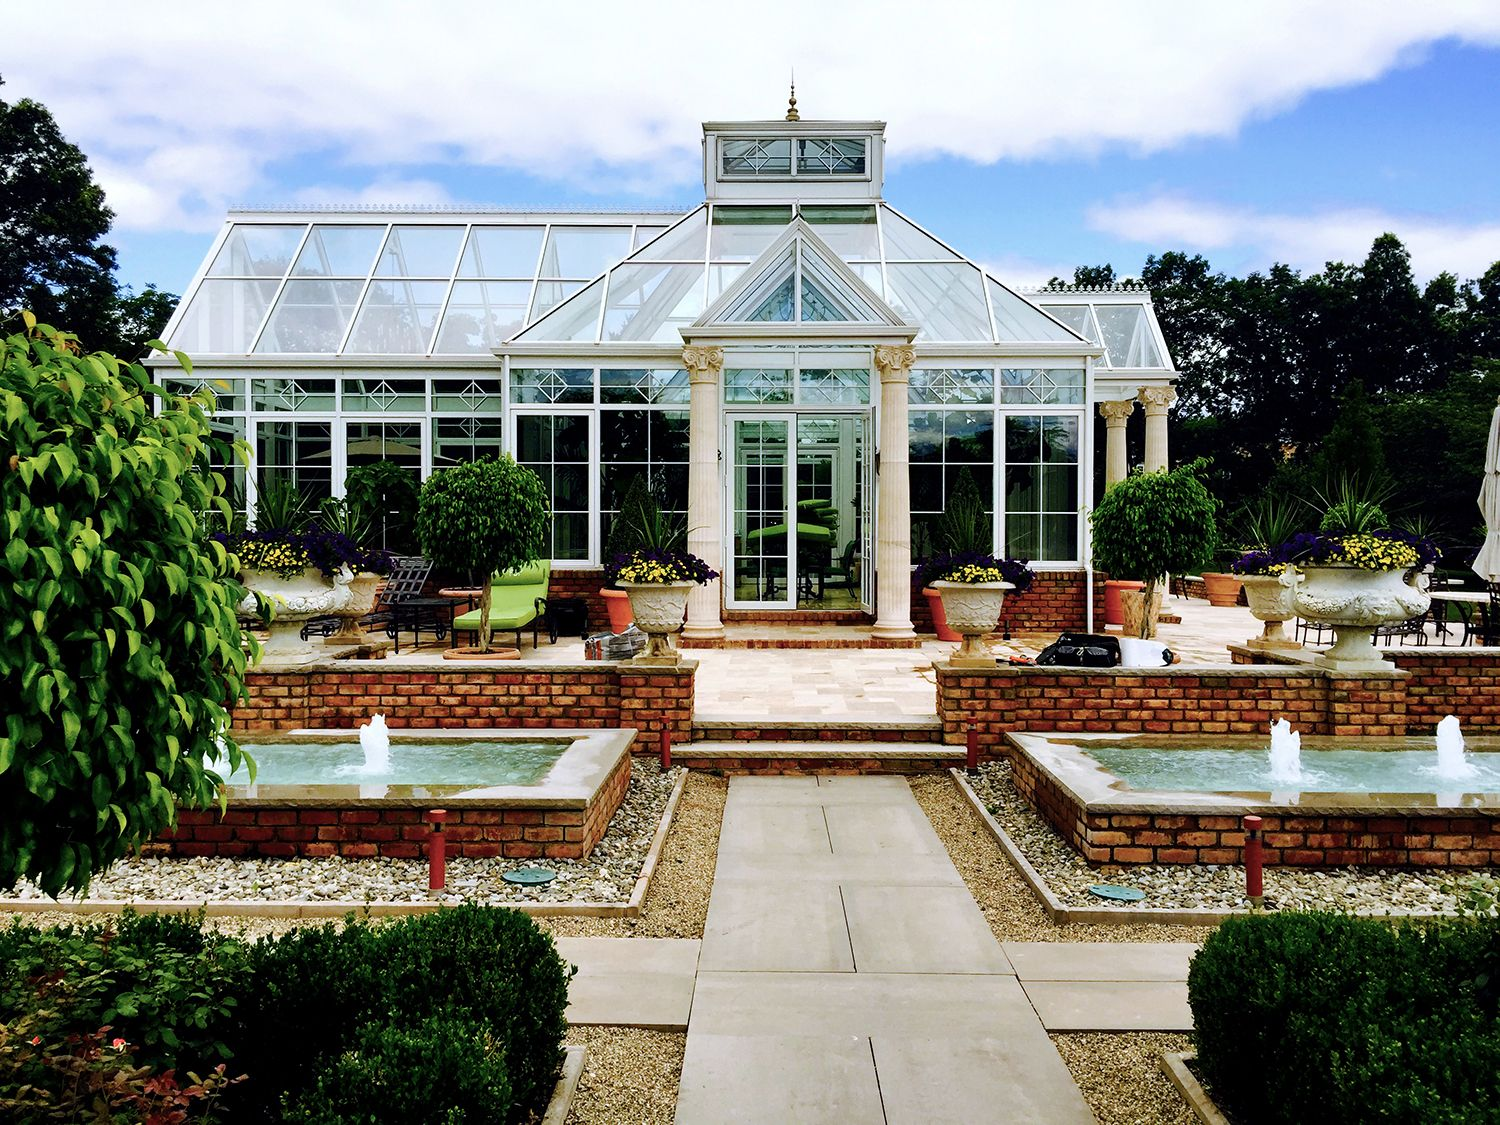 Traditional conservatory, perfect for backyard entertaining